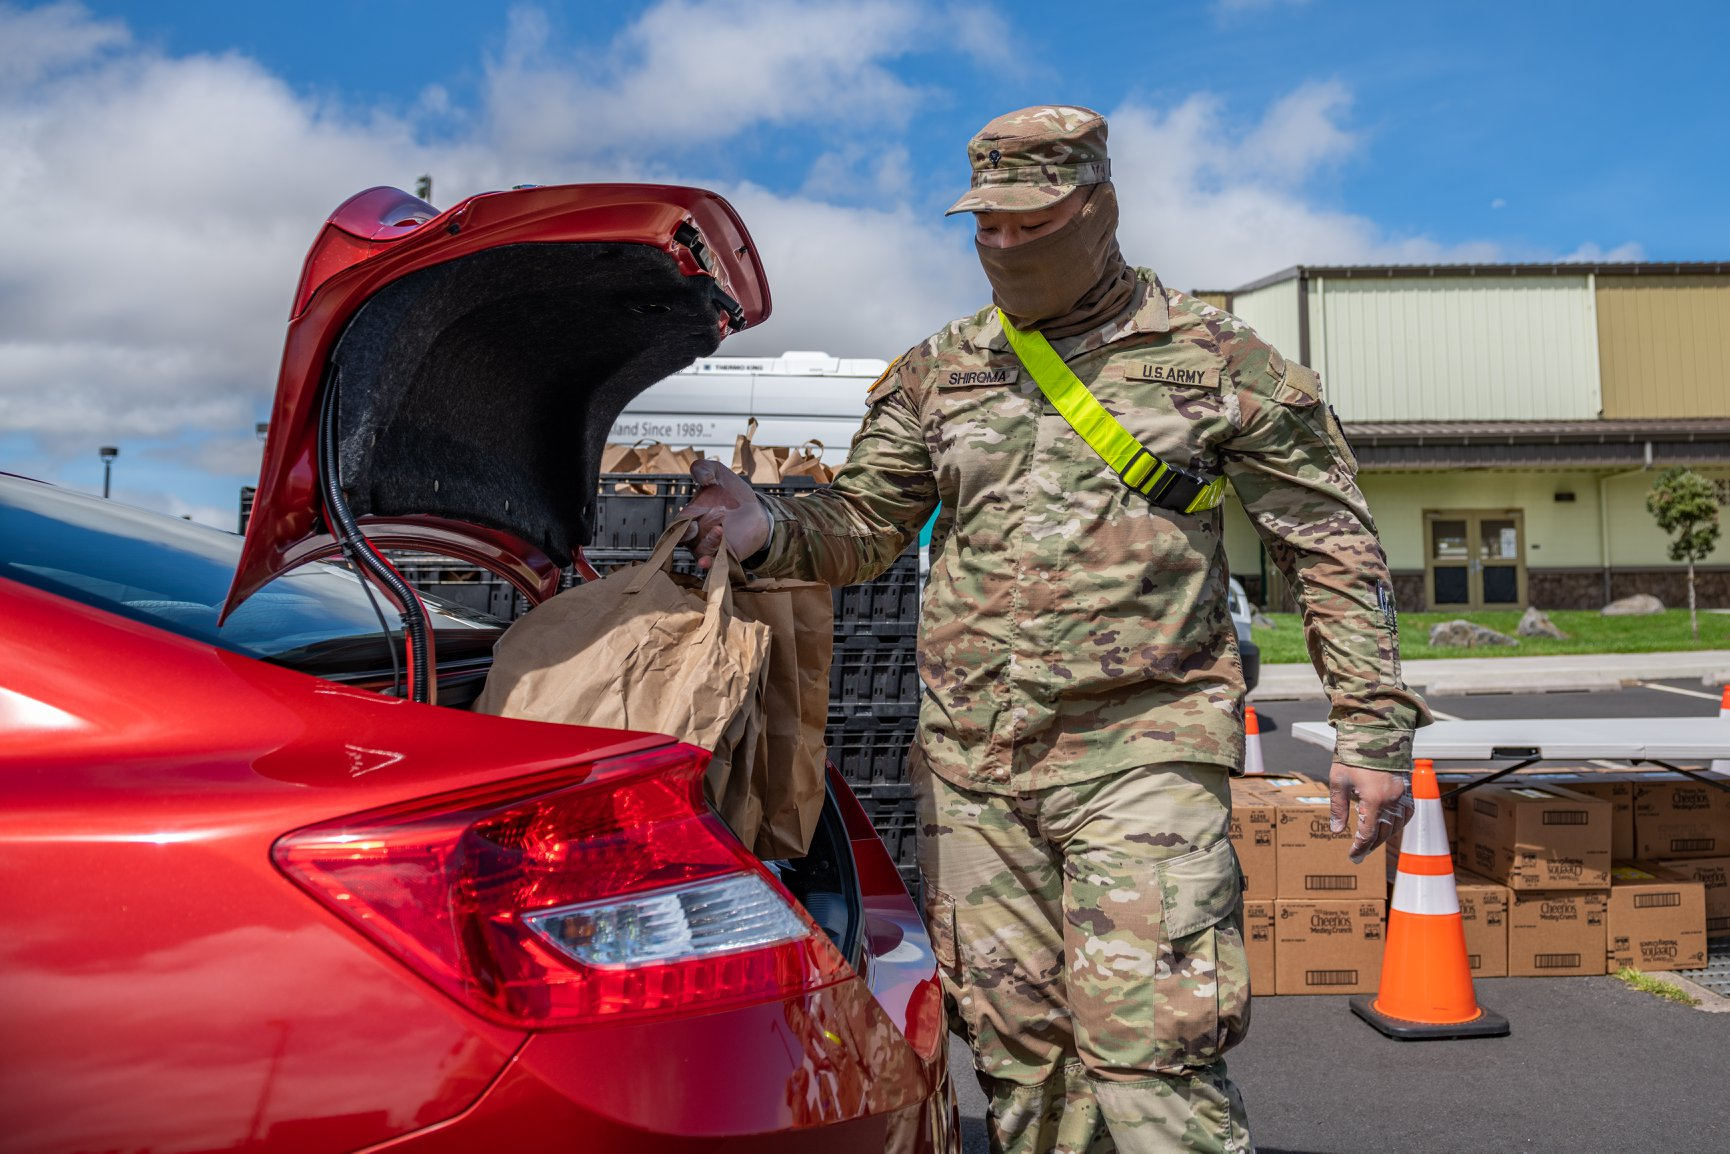 a man places supplies into a car trunk Hawaii Public Housing Authority - Hawaii Department of Health and Hawaii Air National Guard